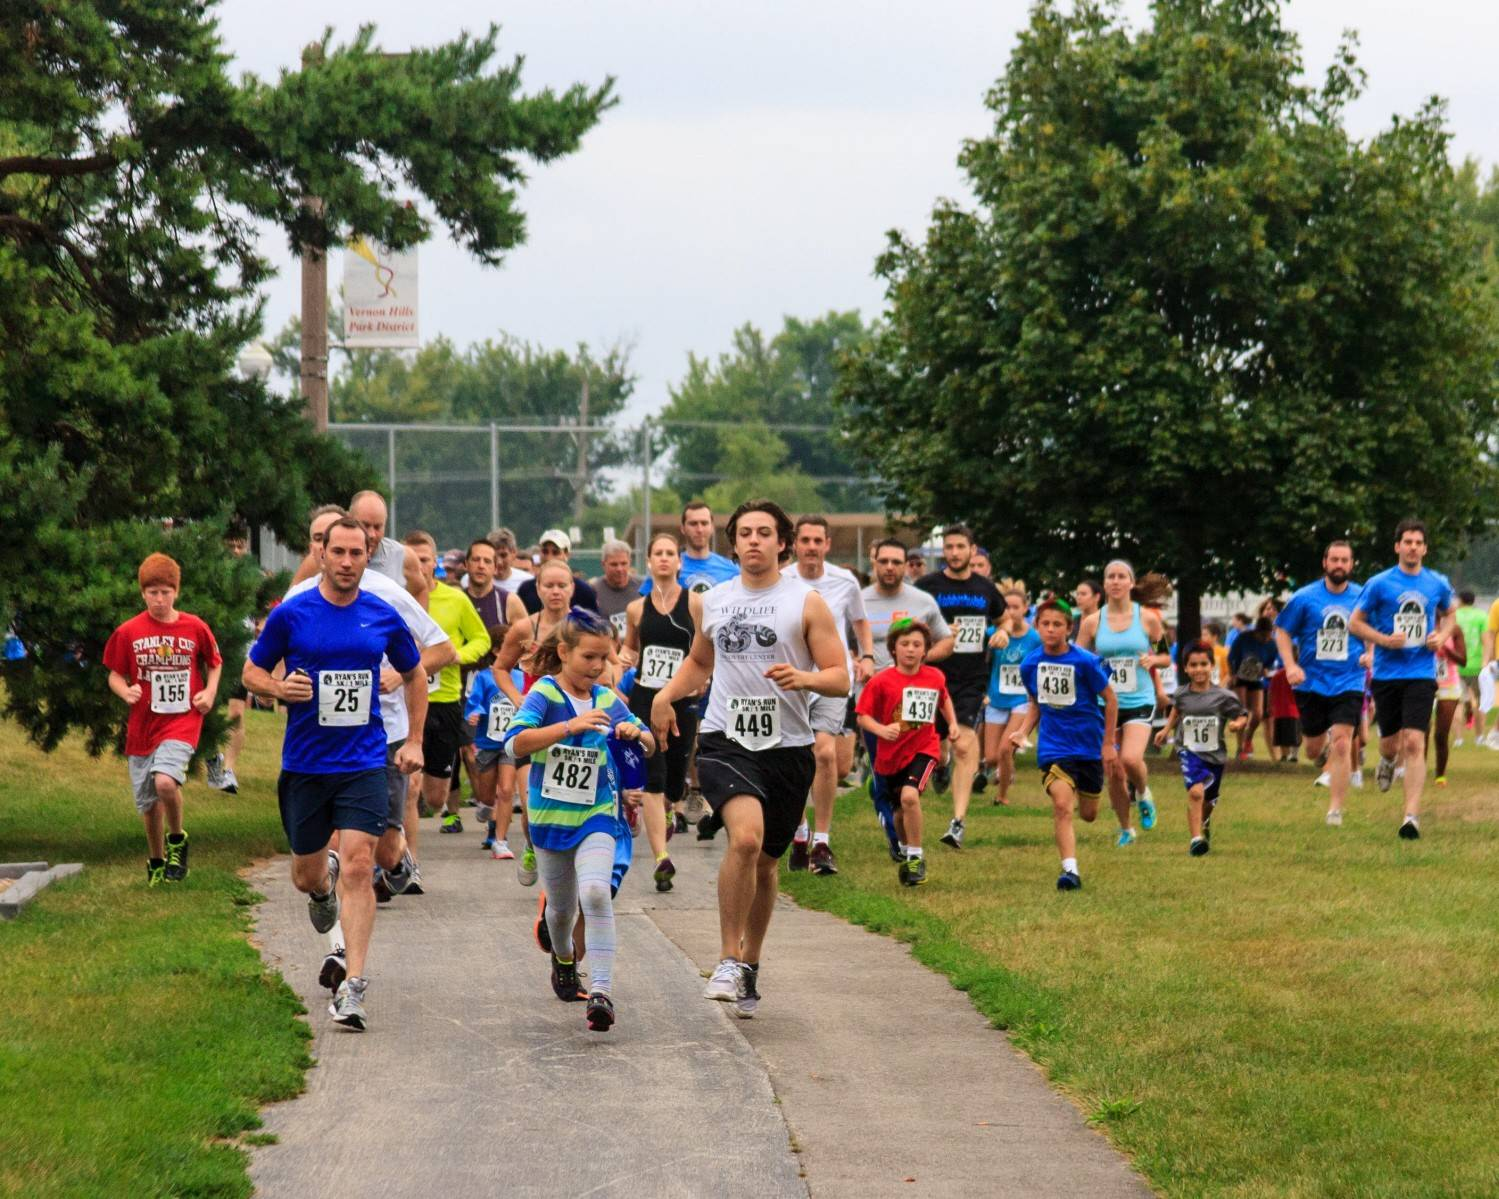 Participants run in the 2013 Ryan's Run fundraiser. This year's event will take place from 8-11:30 a.m. at Century Park, 1001 Lakeview Parkway, Vernon Hills.